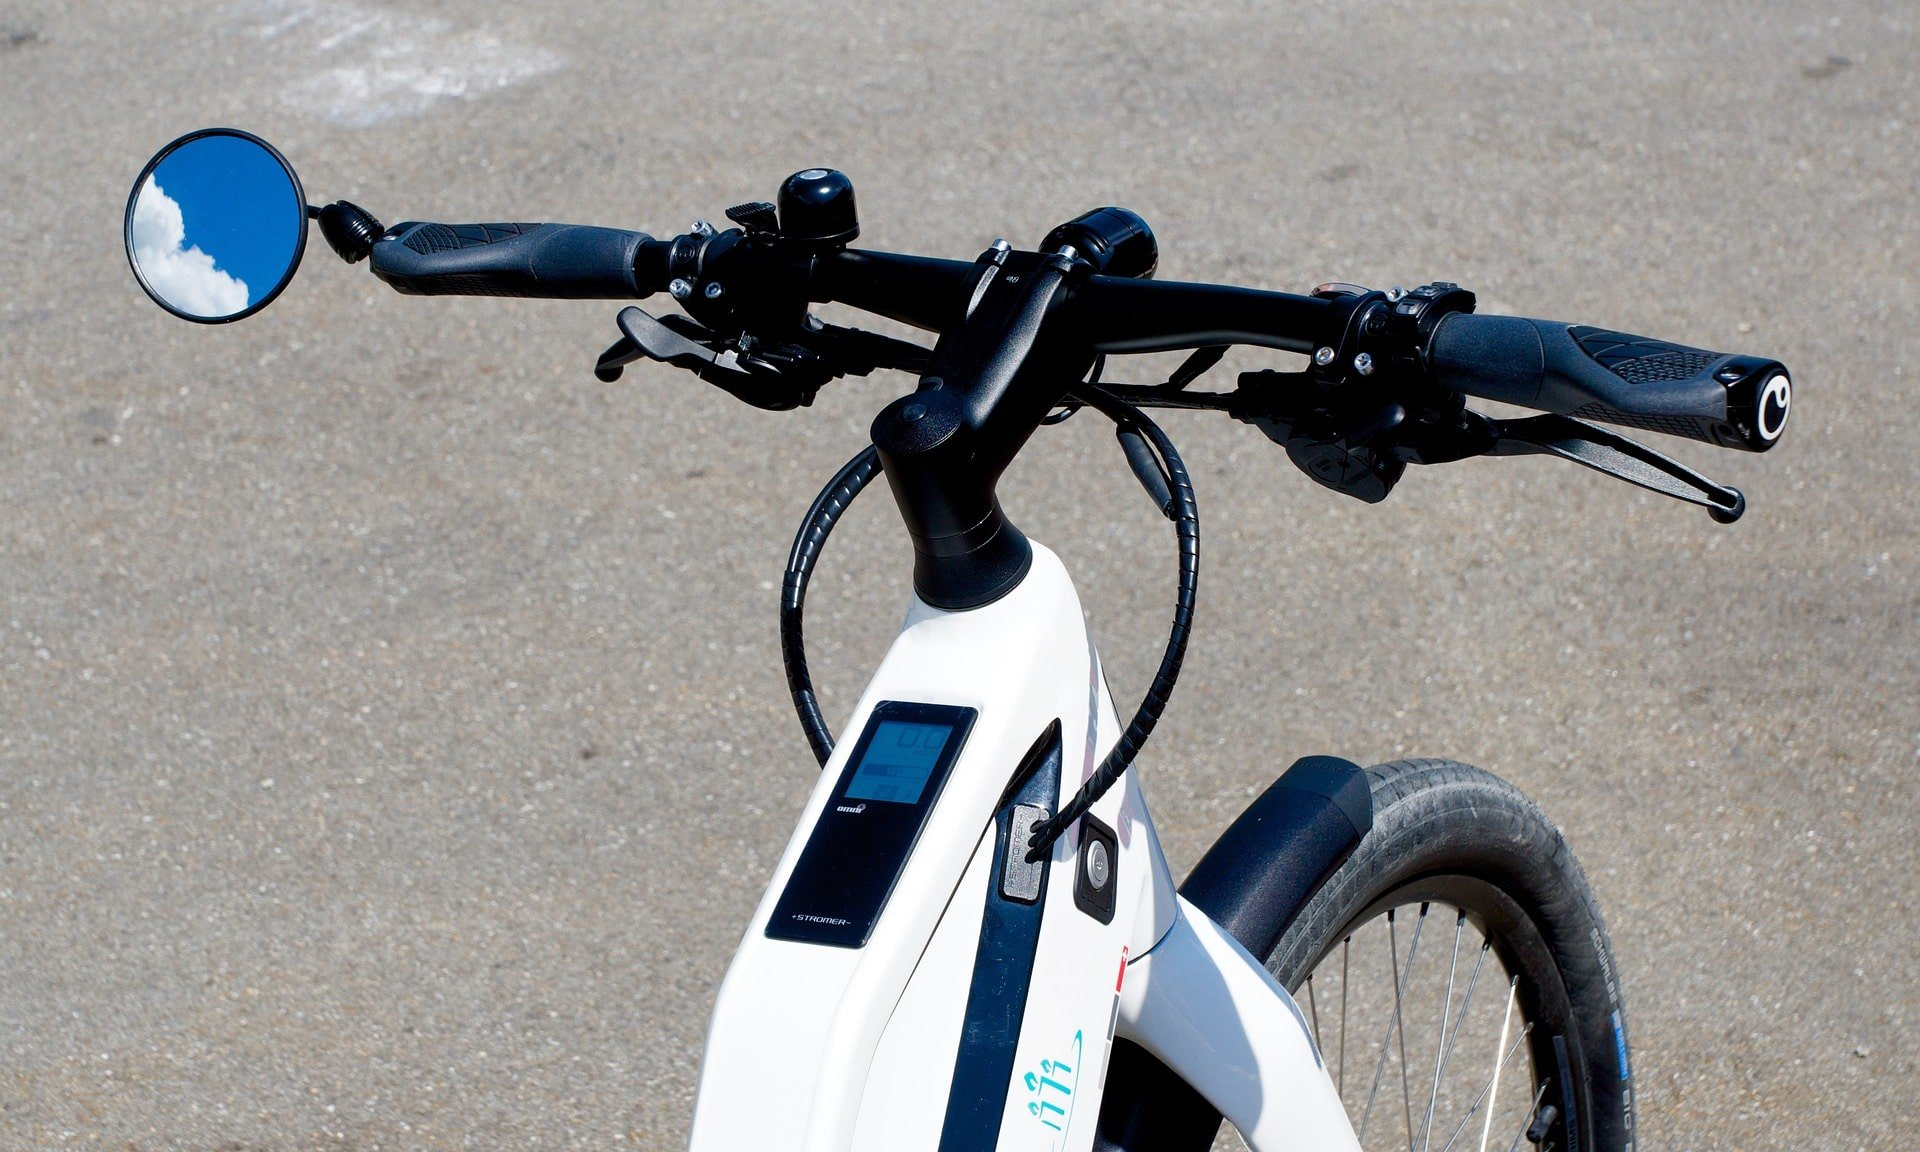 8 Questions You Need To Ask Before Buying an eBike Online